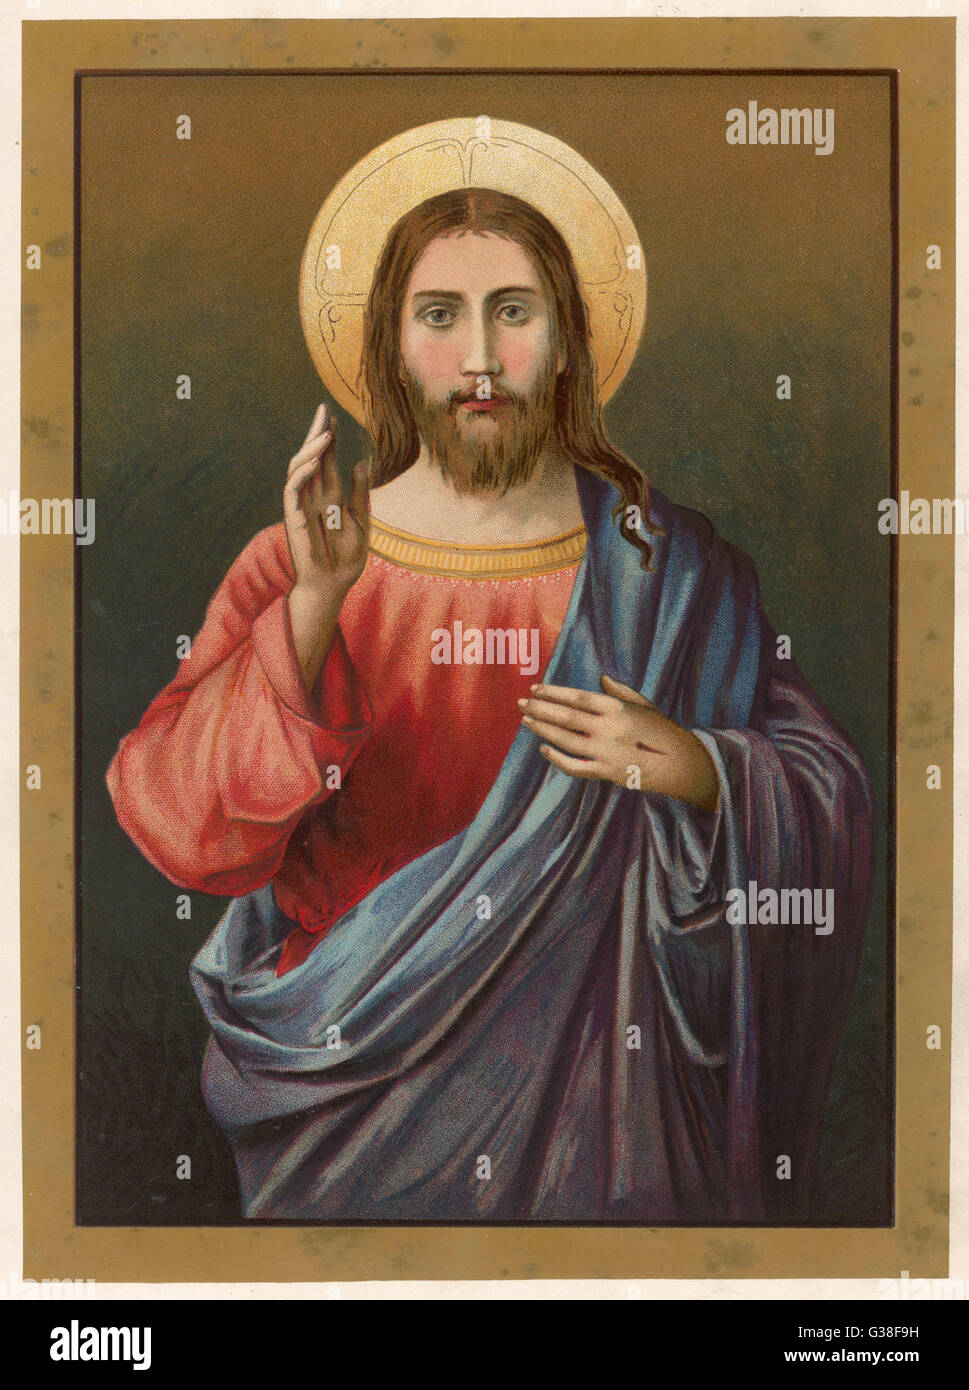 Jesus Blessing High Resolution Stock Photography And Images Alamy